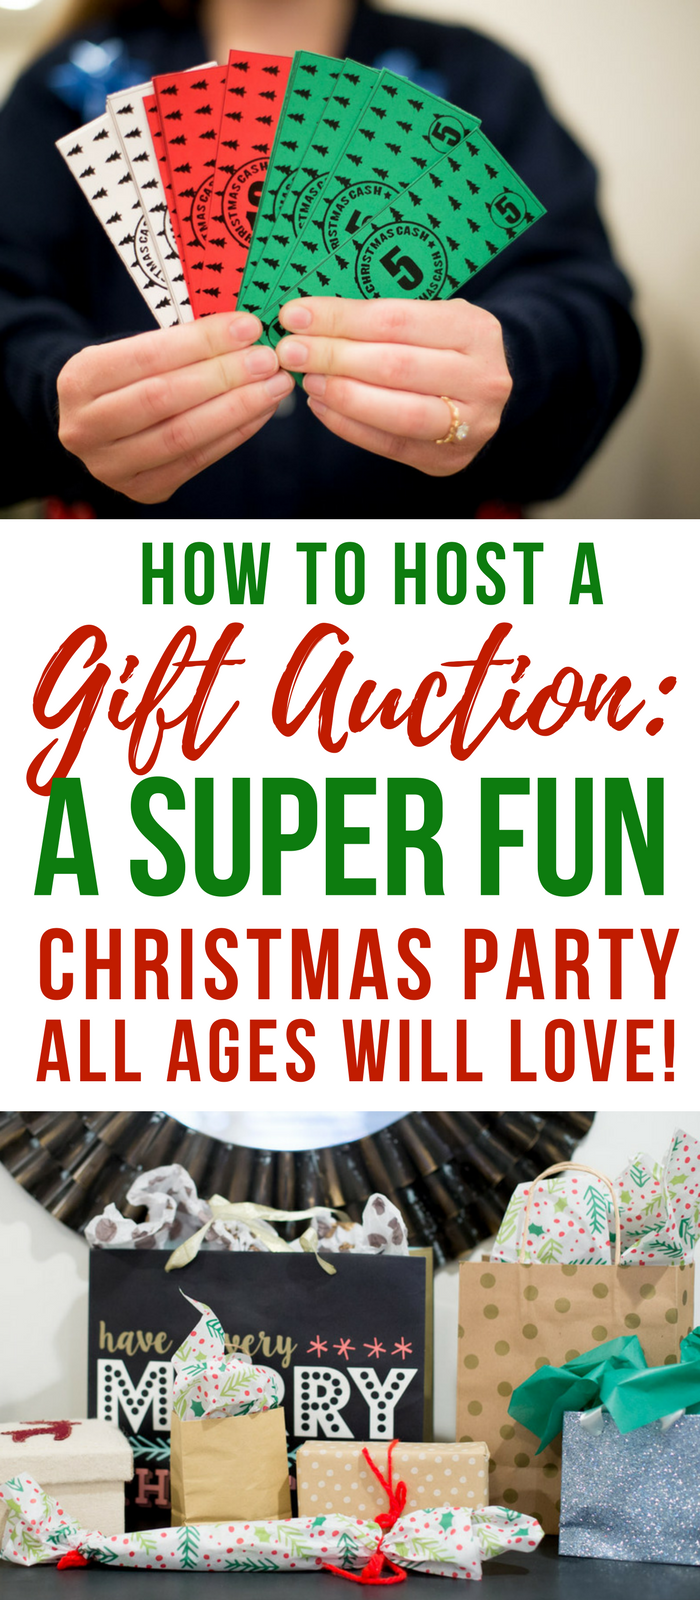 How to Do A Christmas Party Gift AuctionWhite Elephant